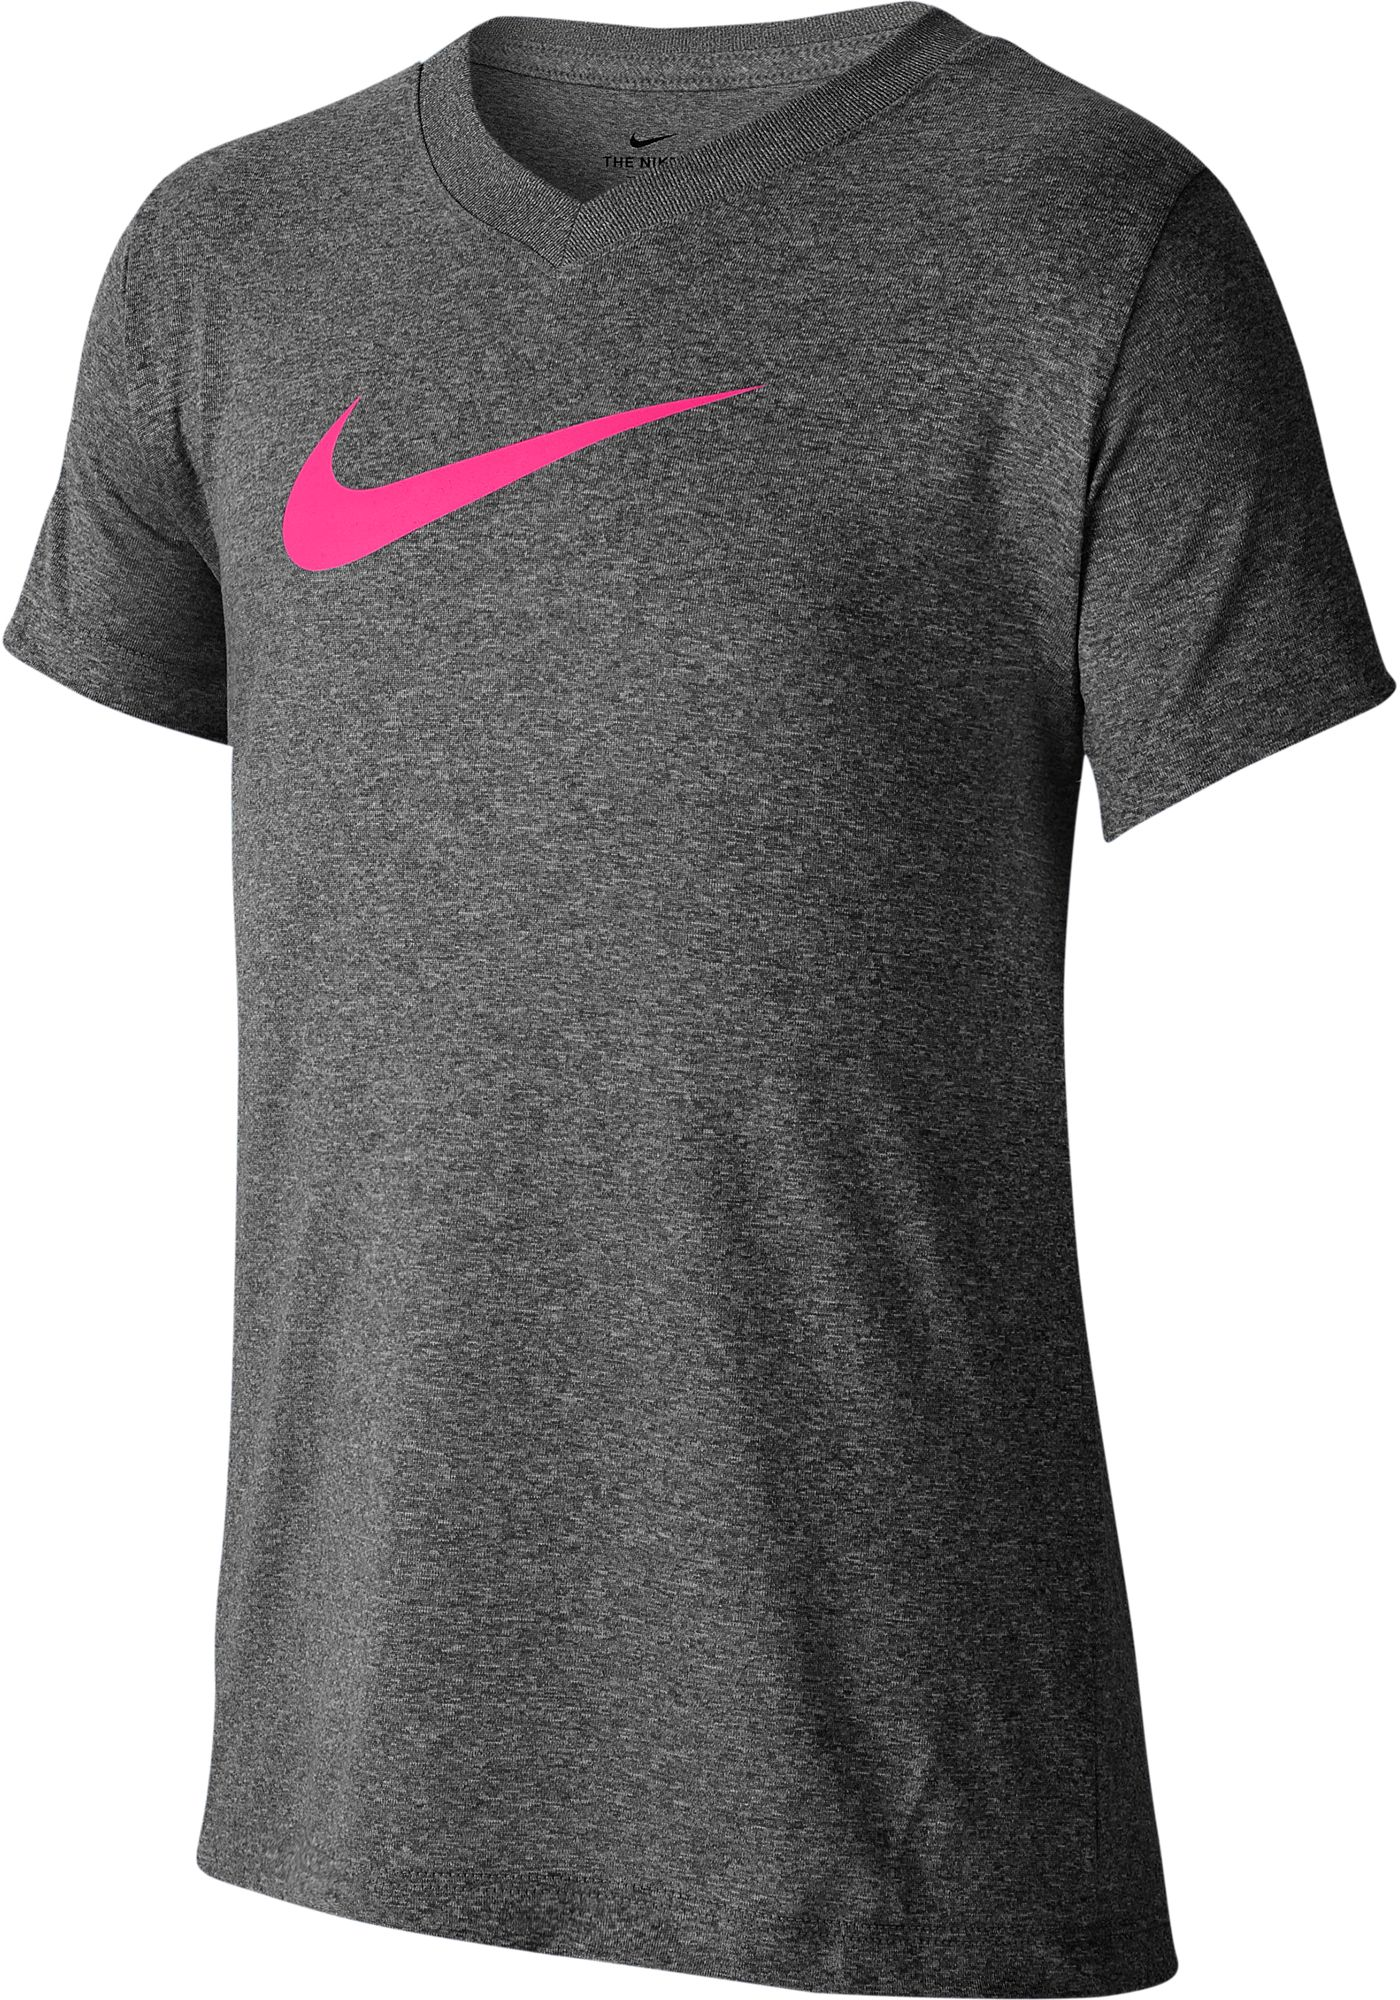 Nike Girls' Dry Legend V-Neck Tee